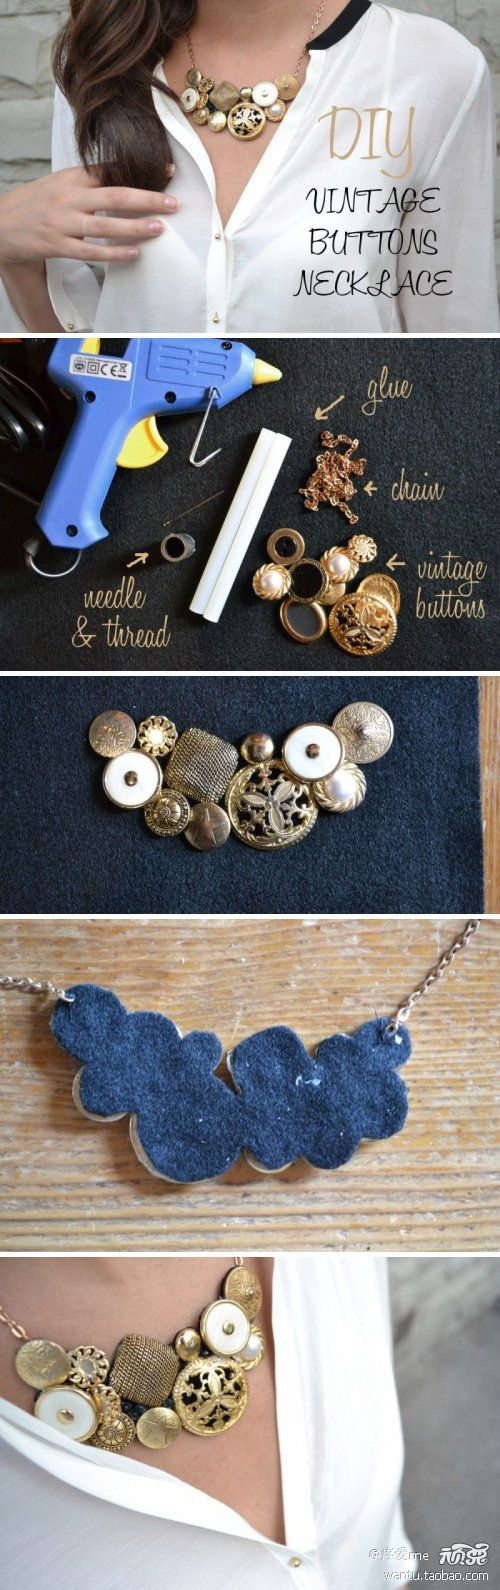 11 Easy DIY Buttons Jewelry Projects: Making Jewelry from Buttons - Pretty Designs